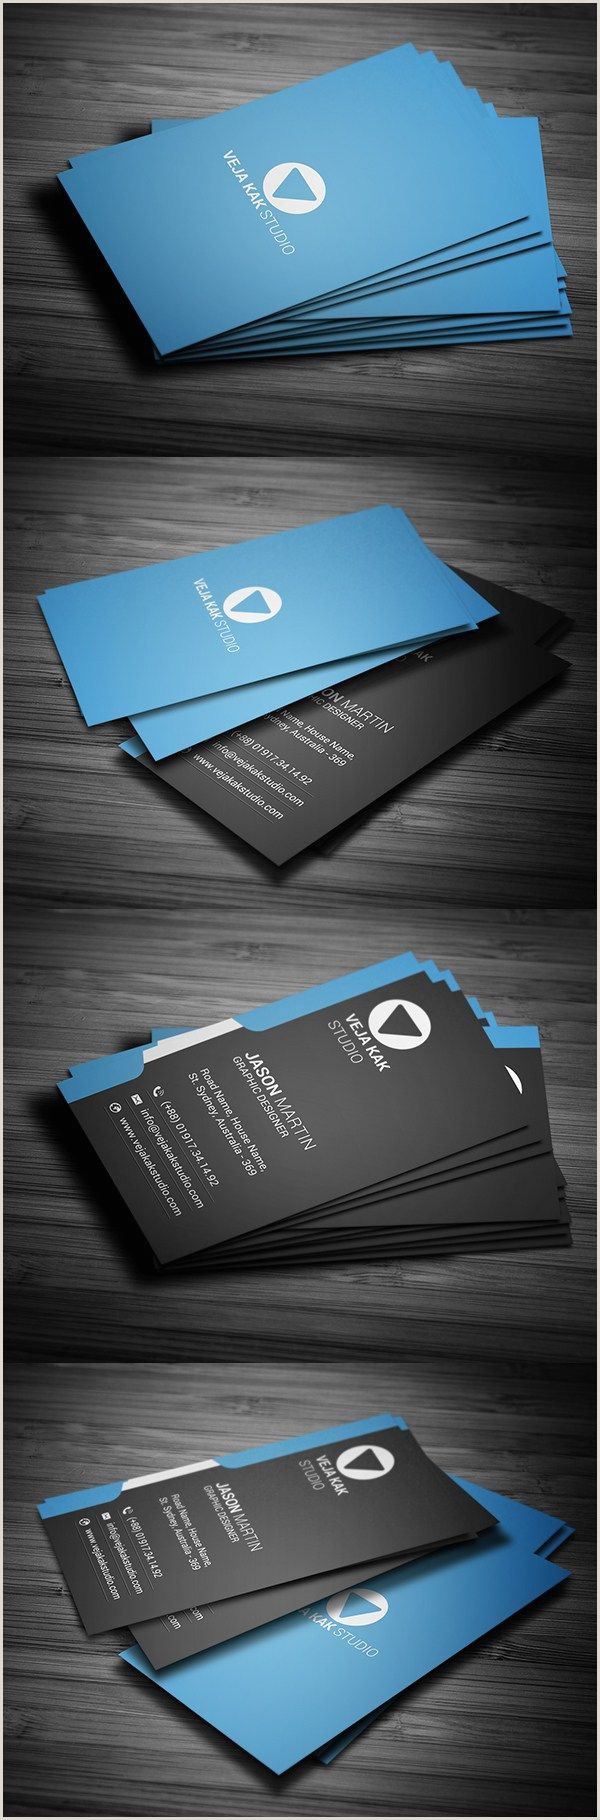 Business Card Design And Print 40 Business Card Design Ideas In 2020